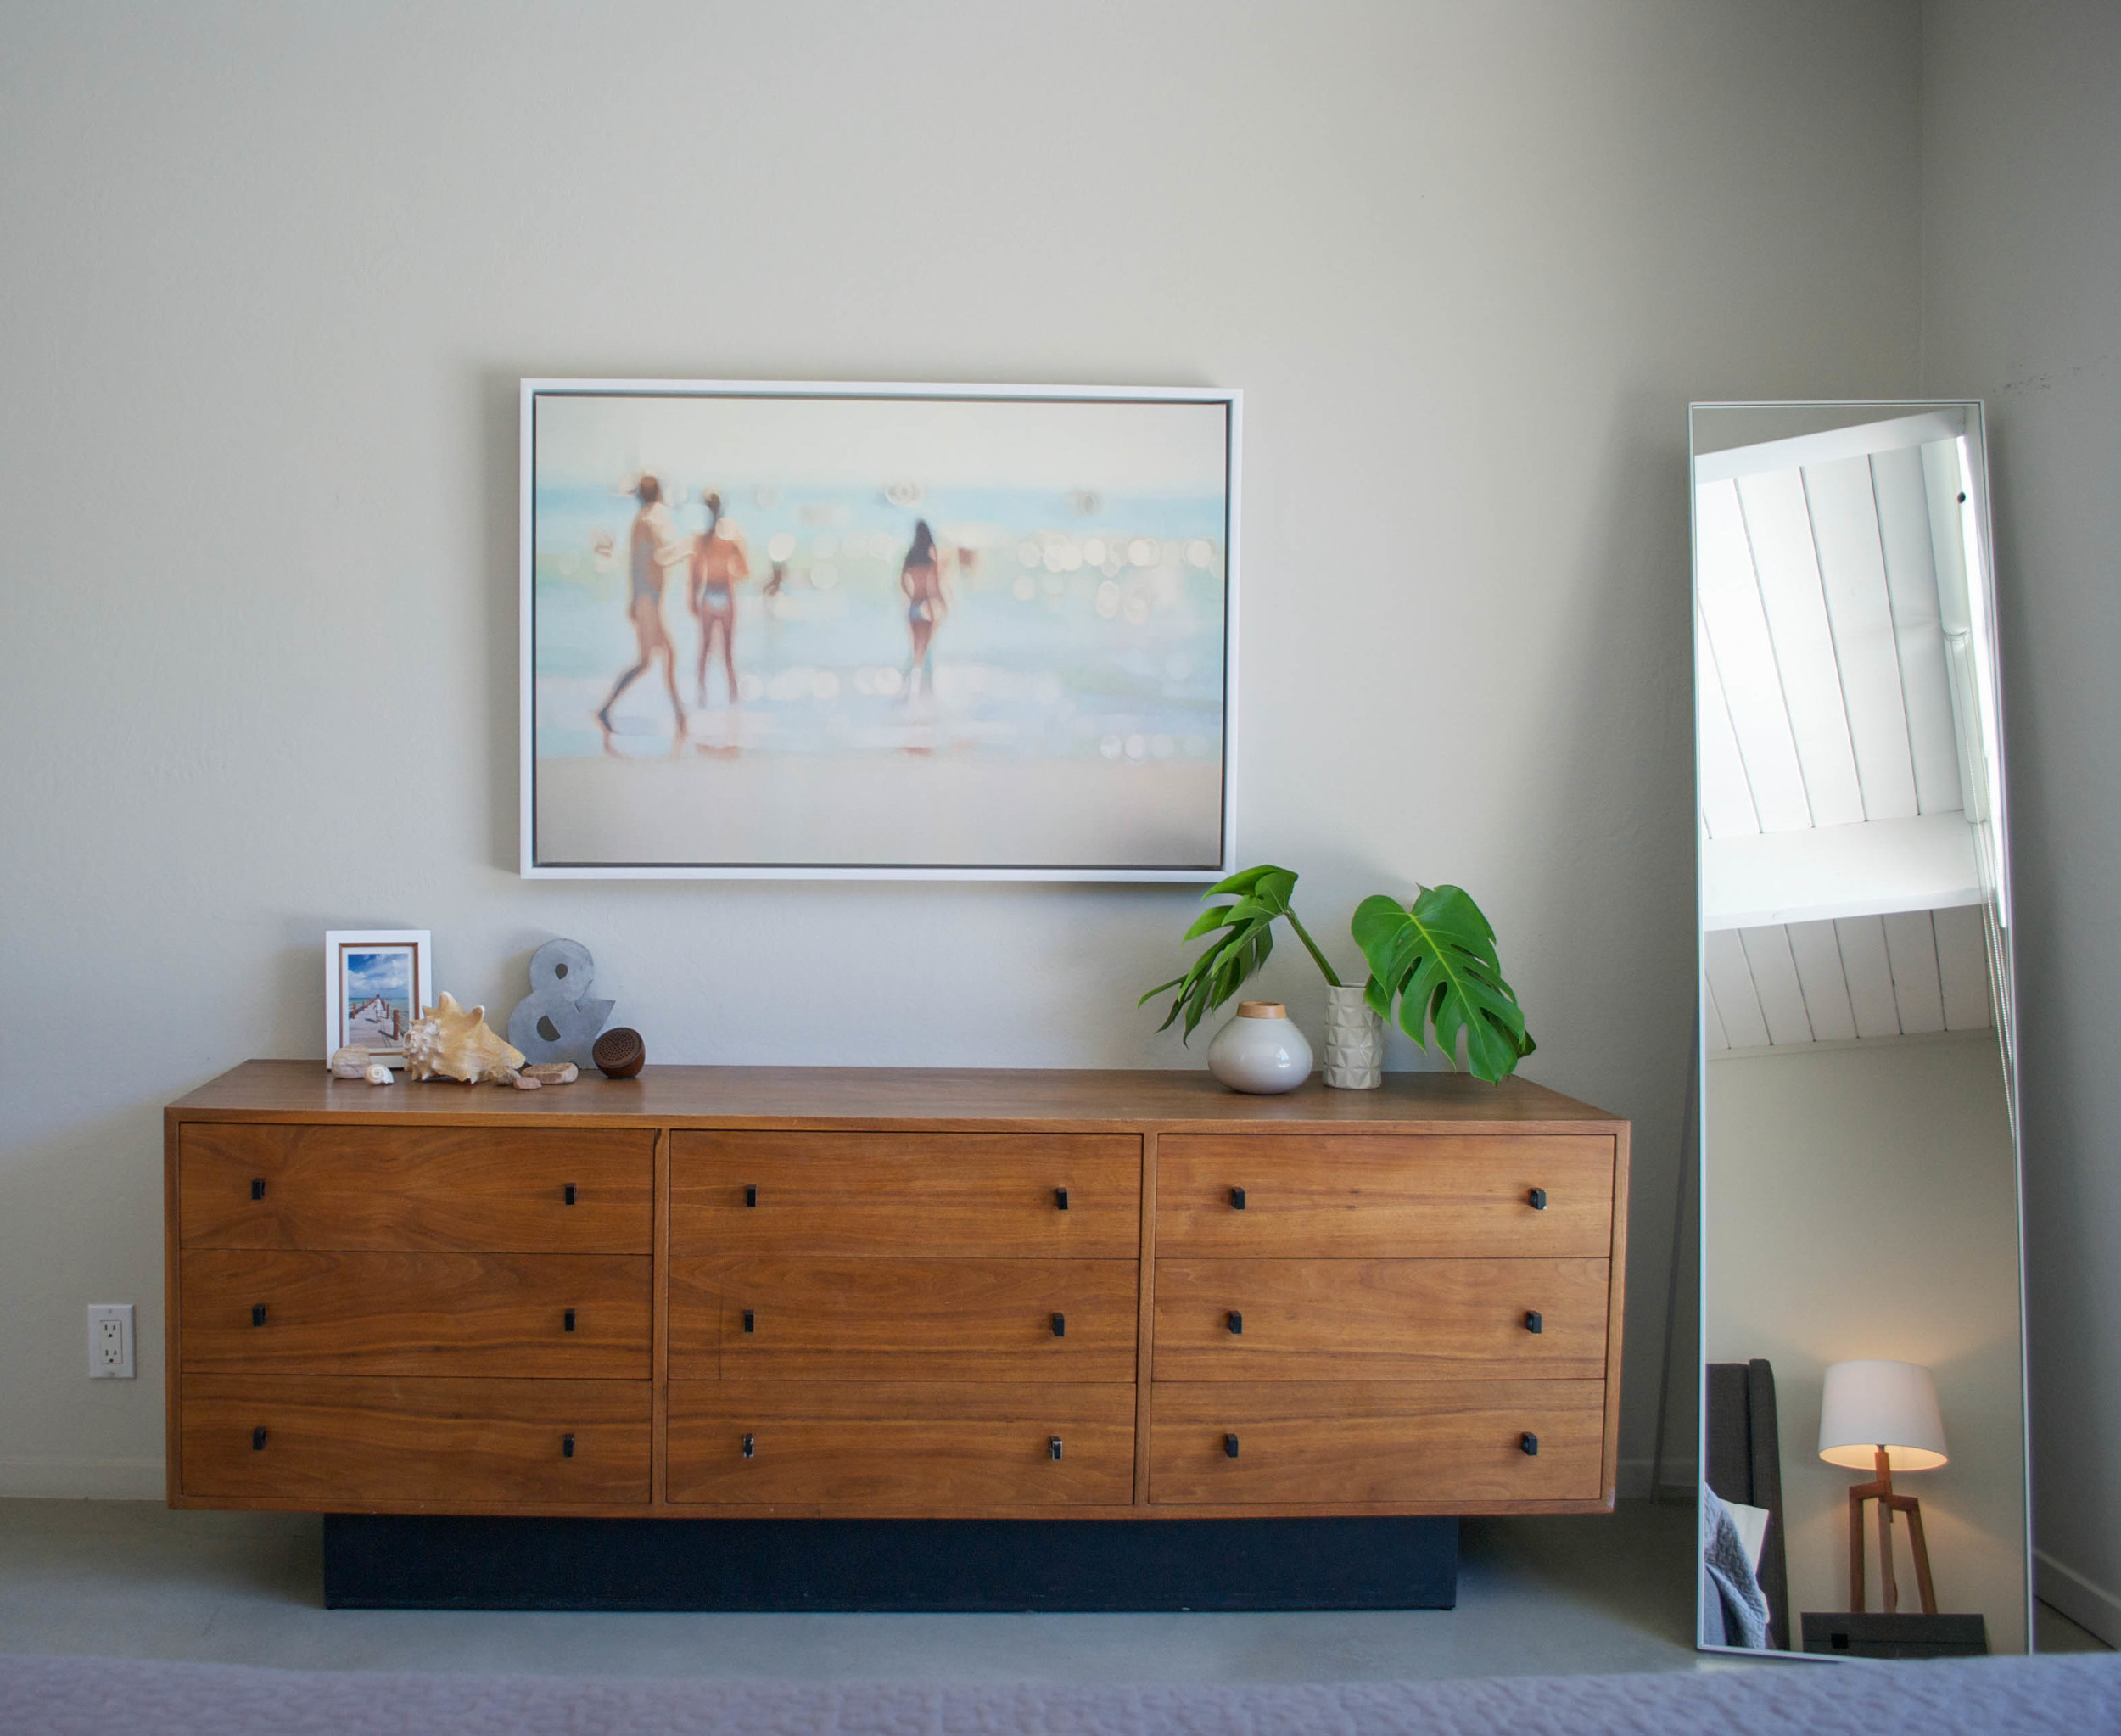 A painting by Philip Barlow is a focal point above this vintage dresser that belonged to Laura's parents.